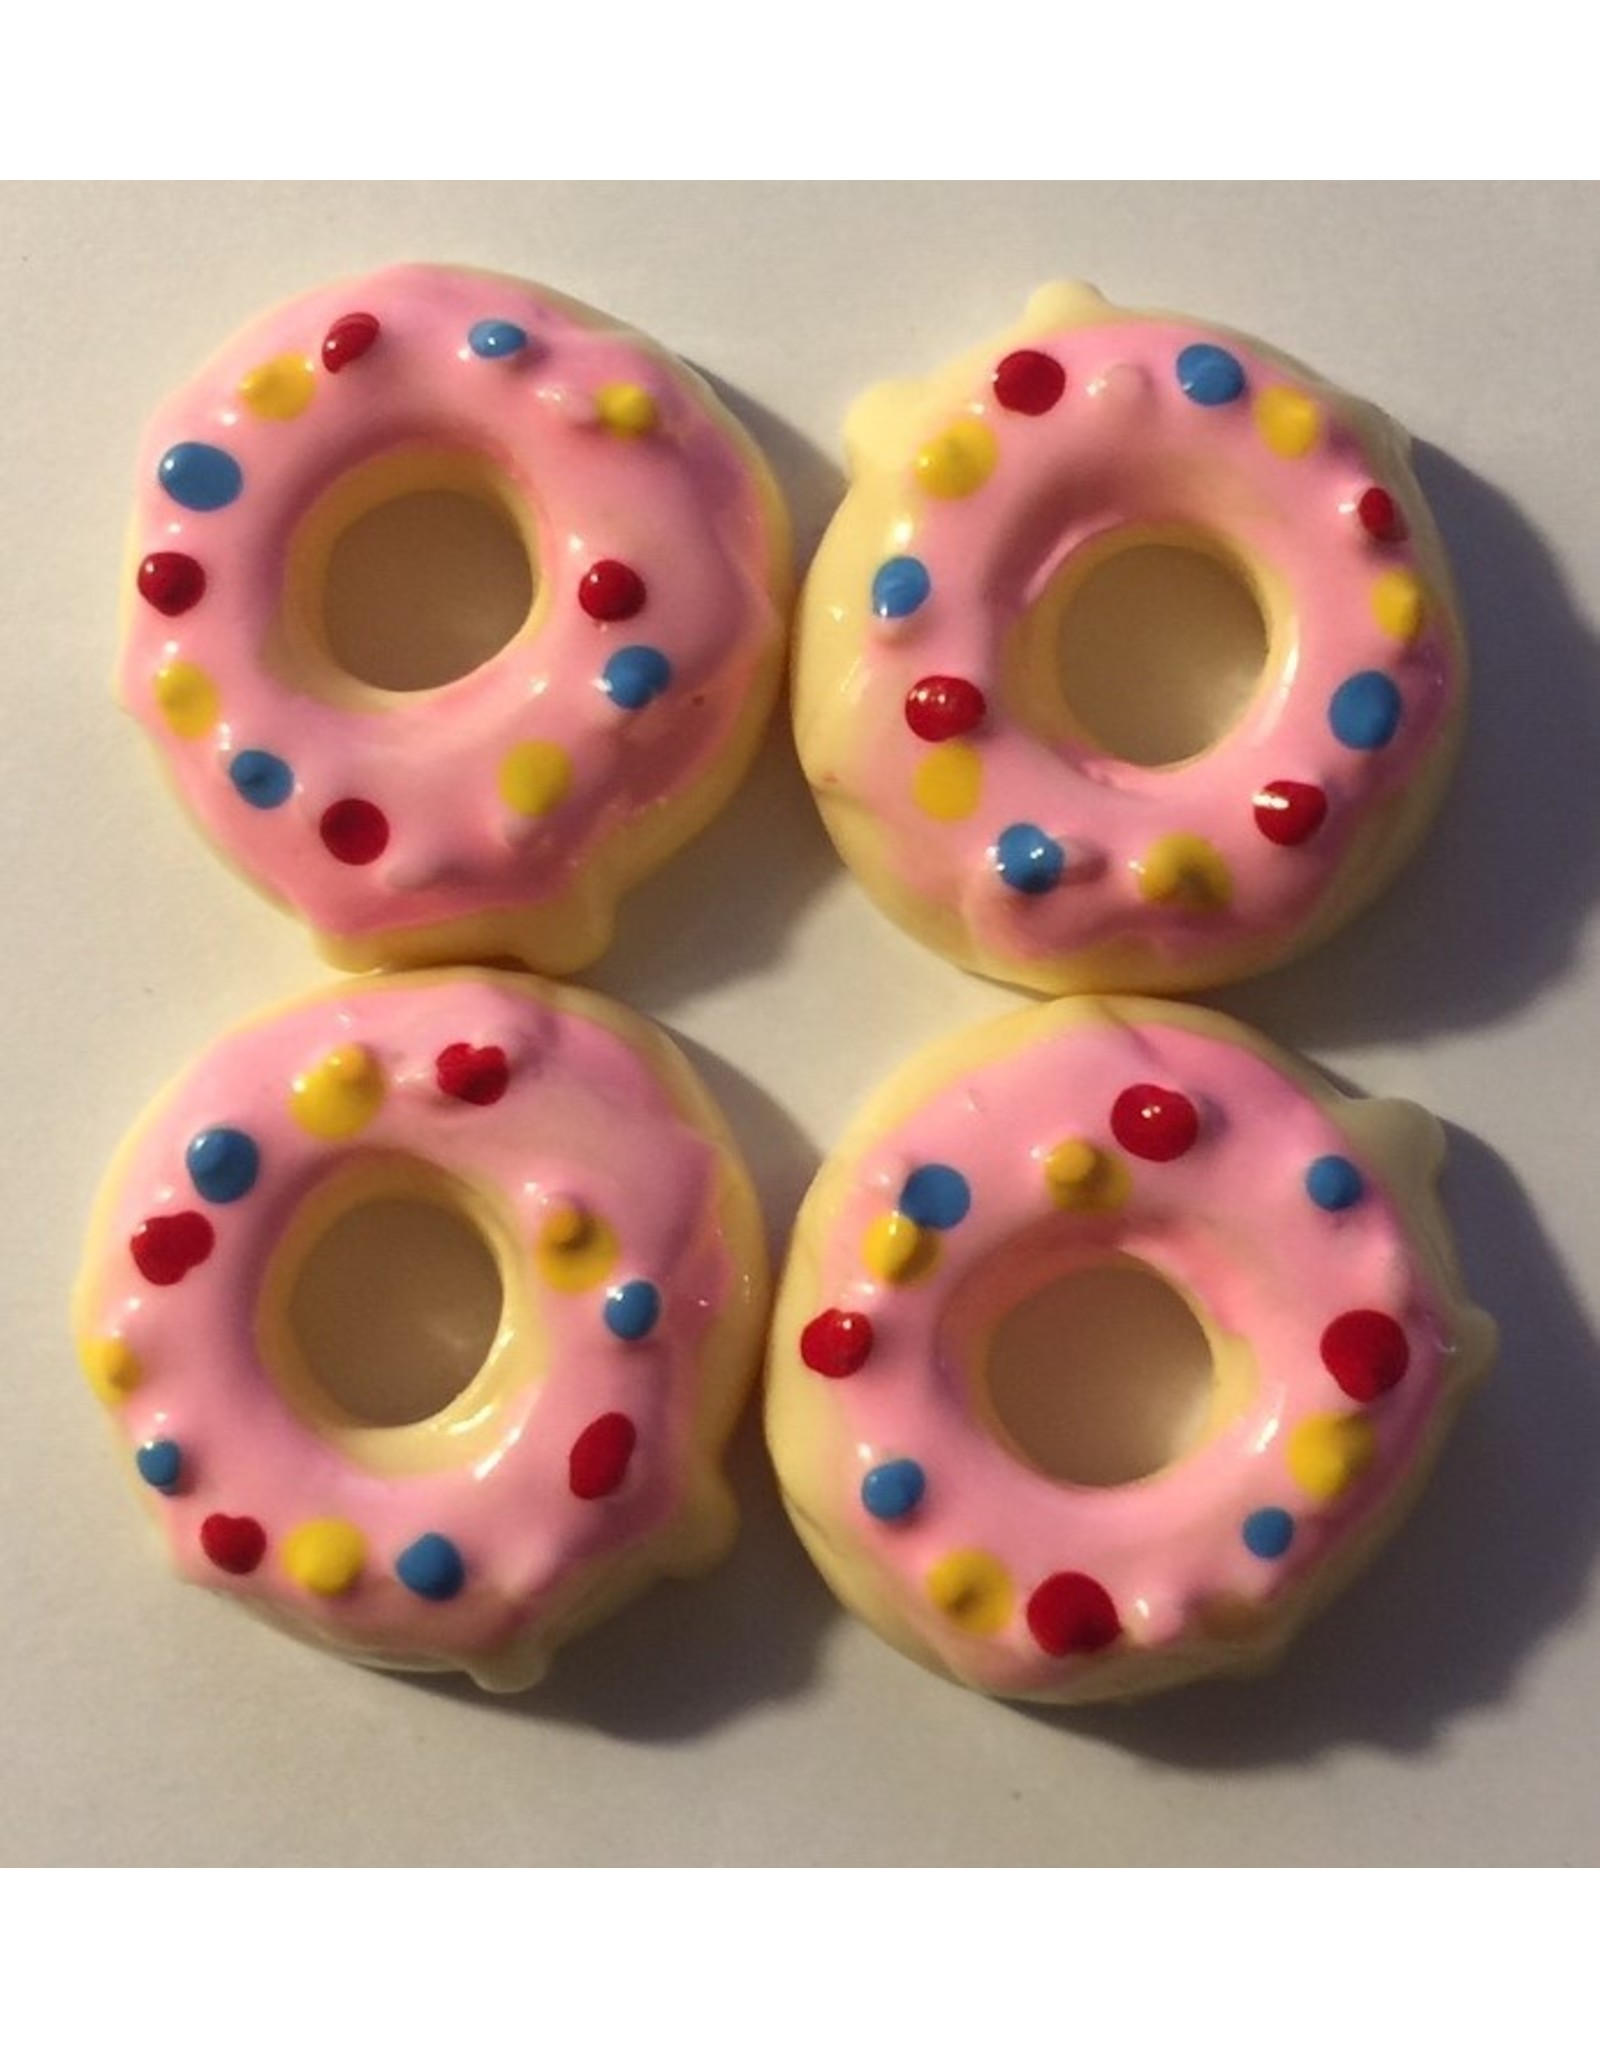 Paws-Itively Pawsome Designs Faux Iced Cake Donuts (set of 4)